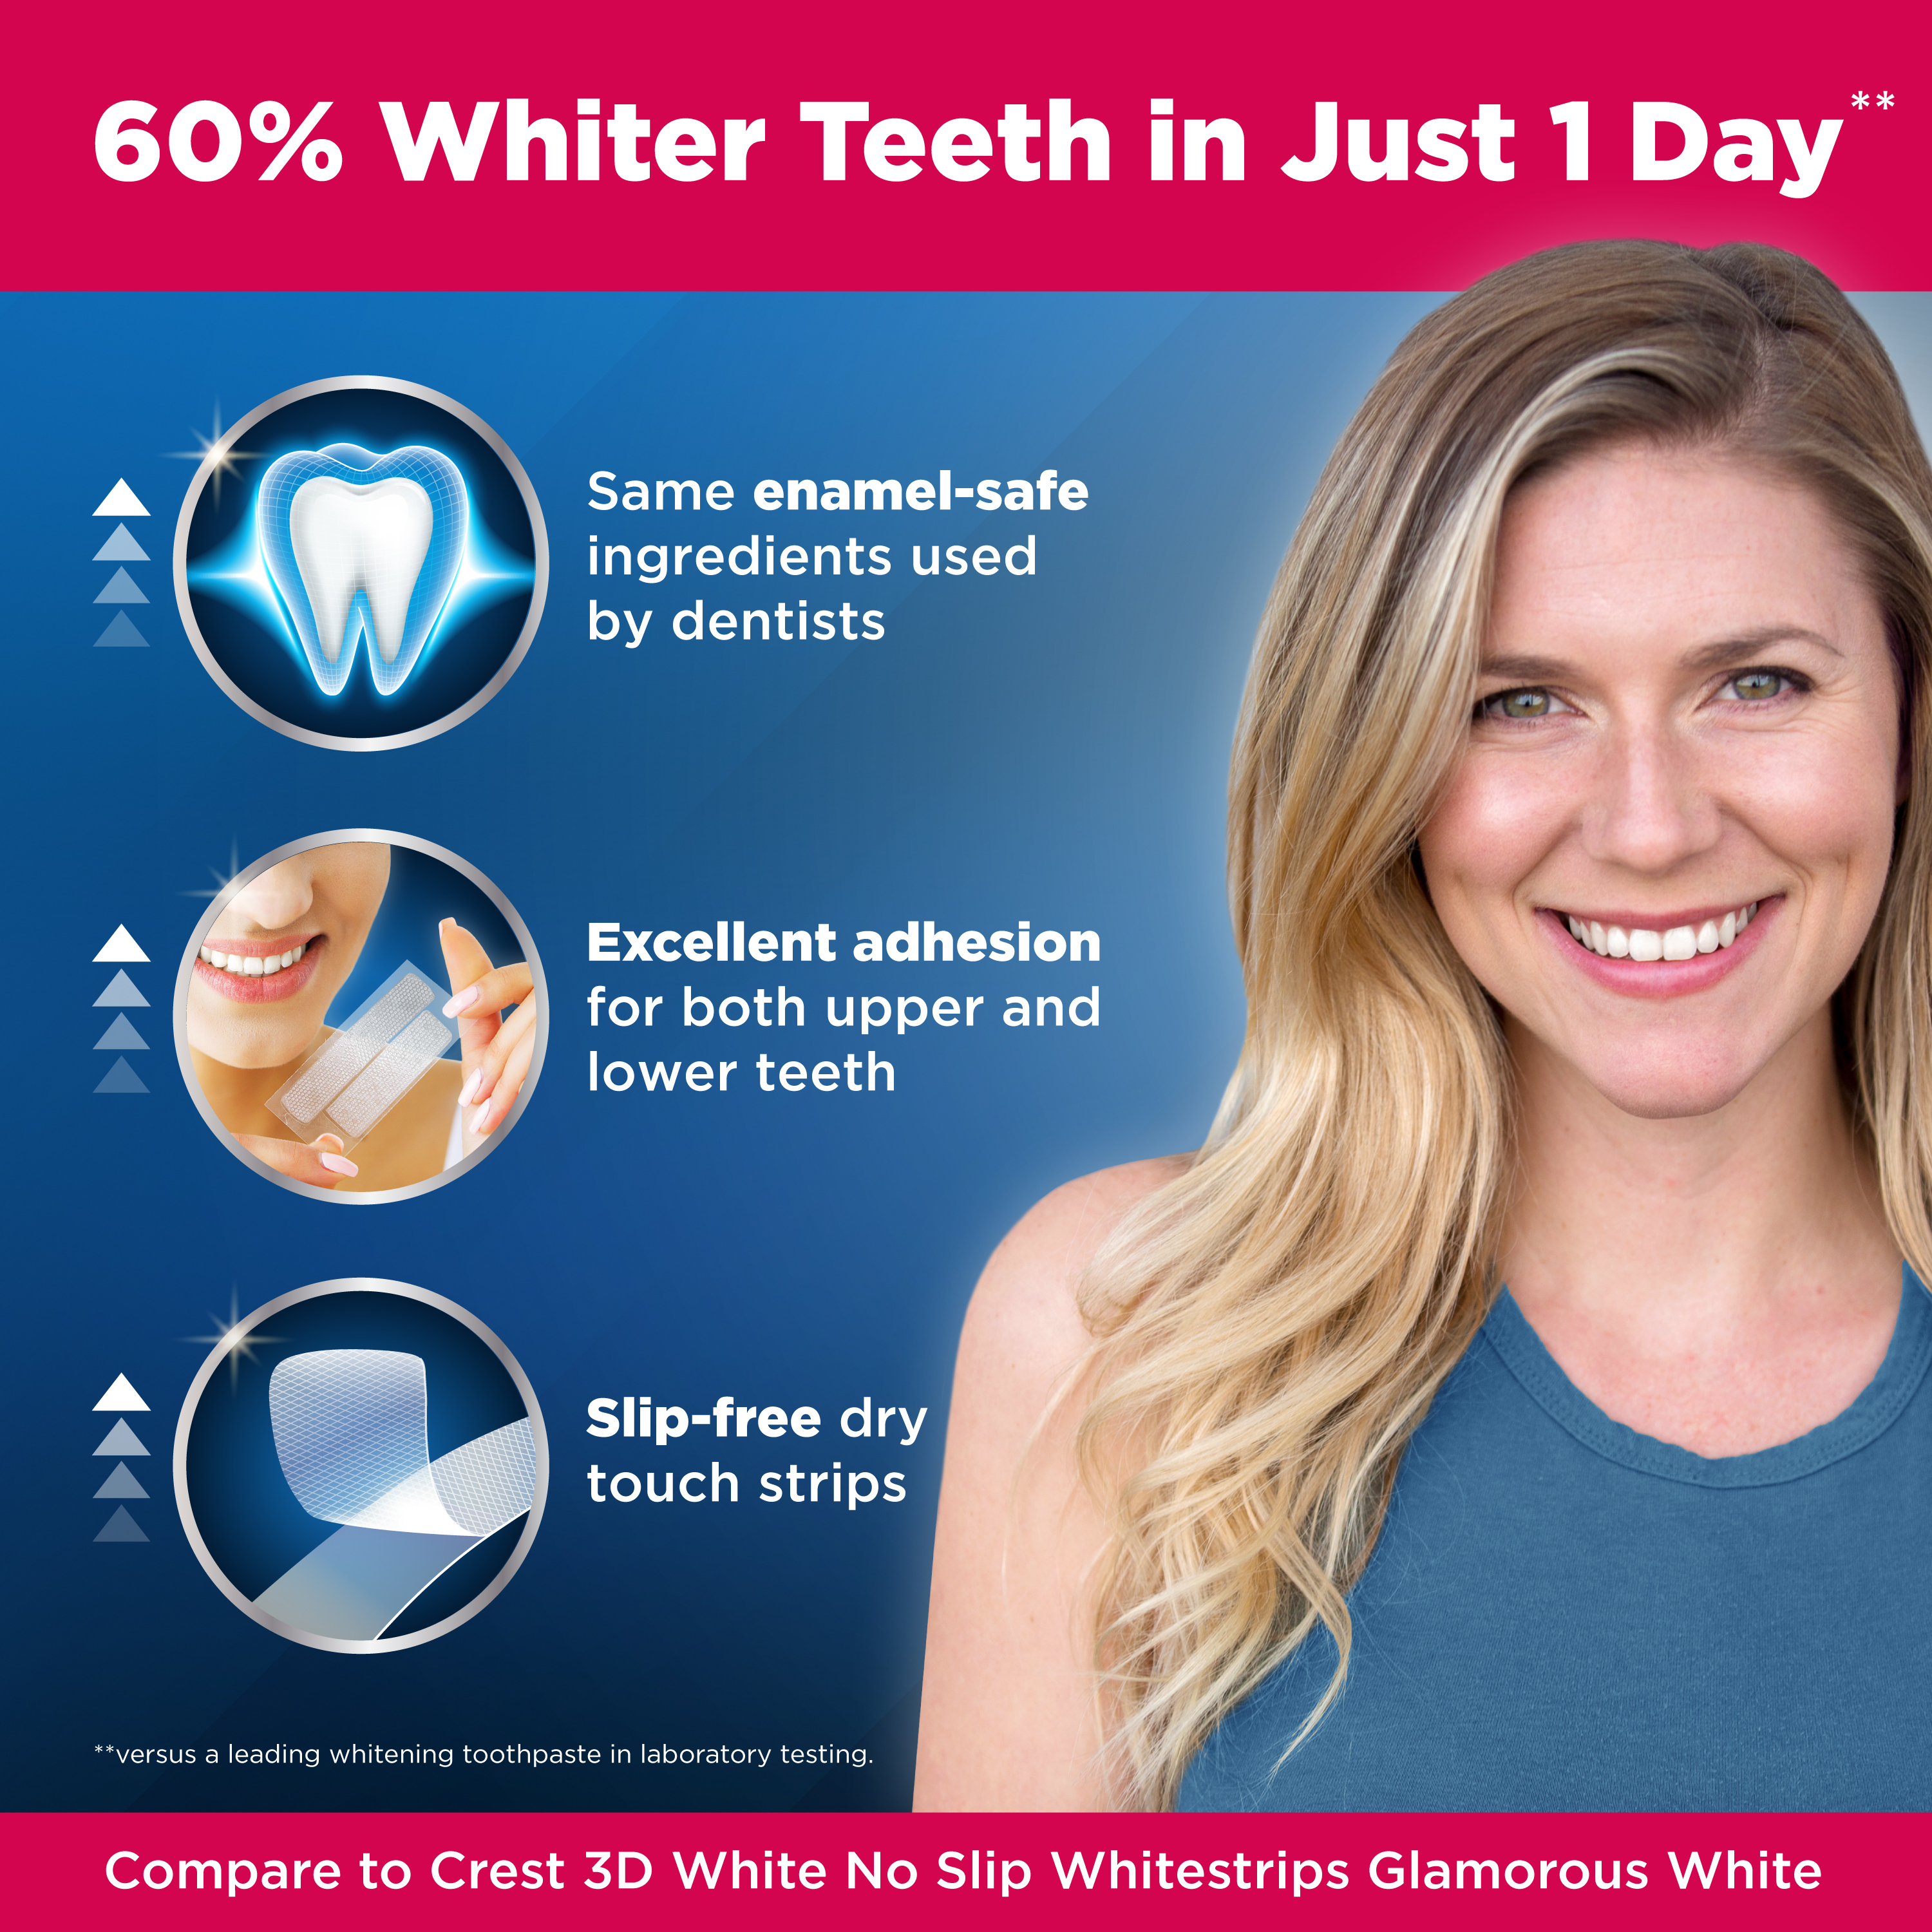 Equate Beauty Premium Teeth Whitening Strips 14 Day Treatment